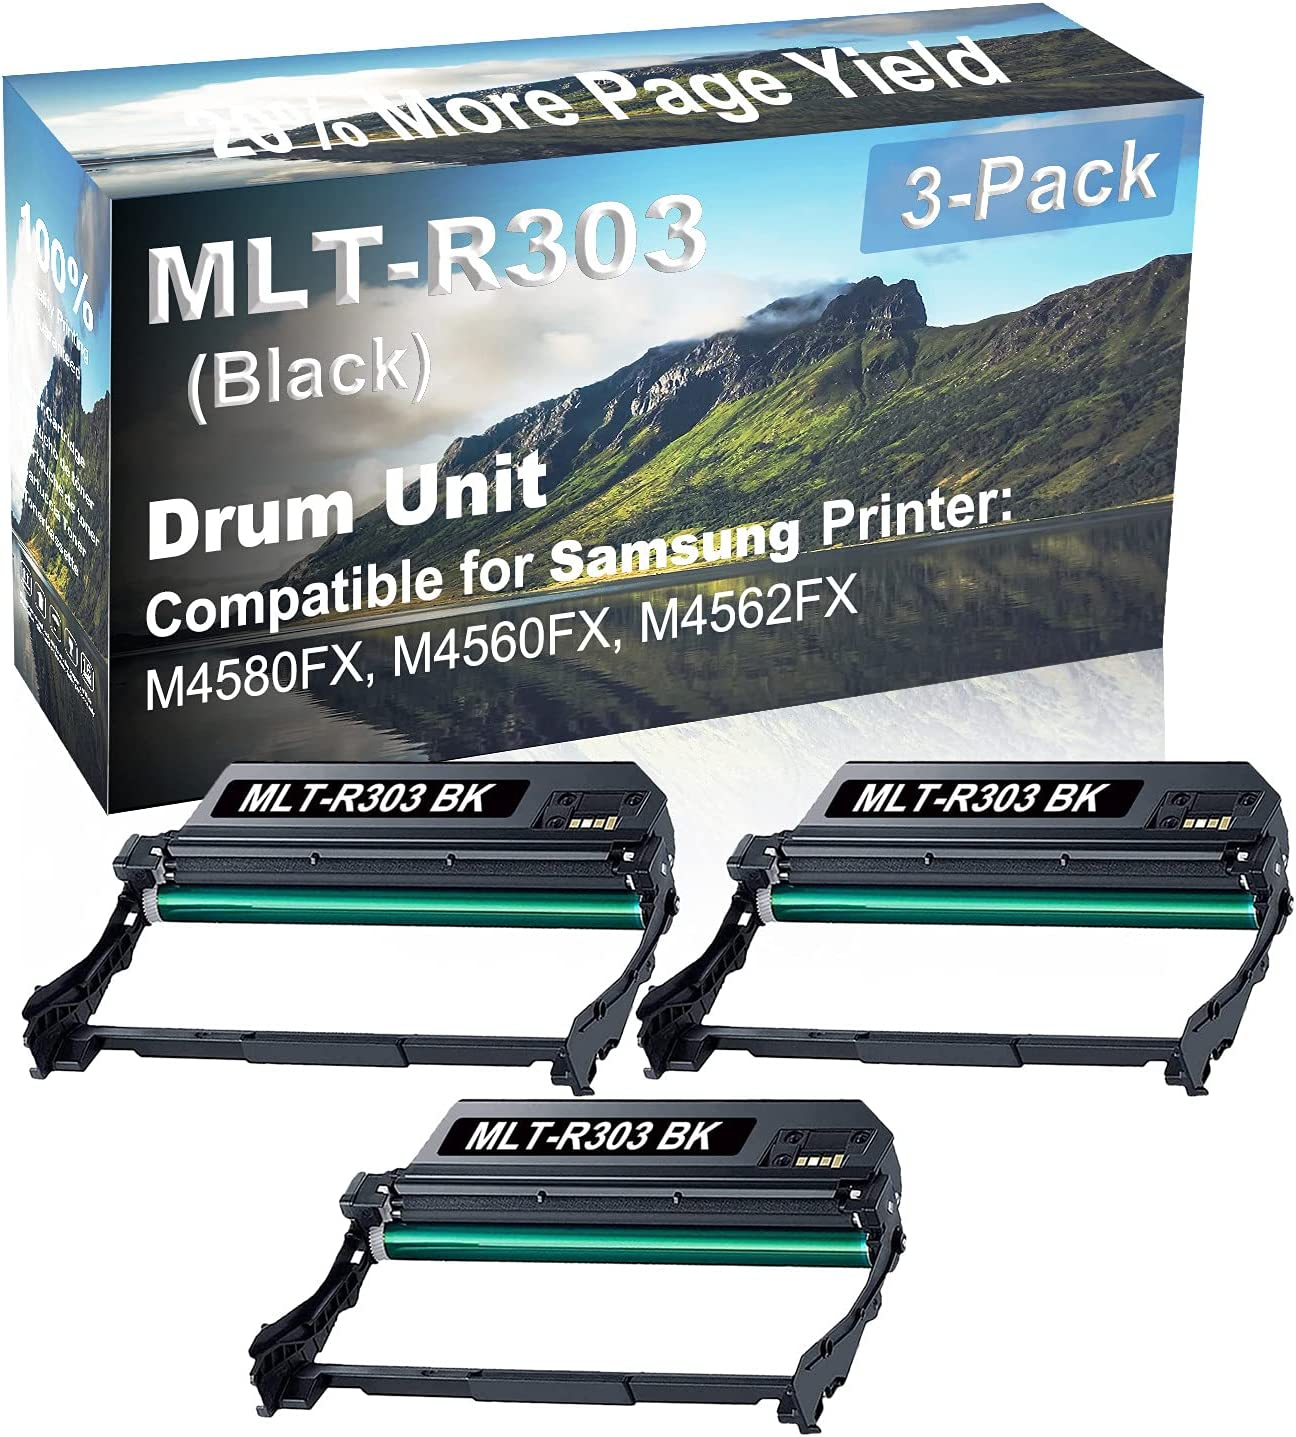 3-Pack Compatible Drum Unit (Black) Replacement for Samsung MLT-R303 Drum Kit use for Samsung M4580FX, M4560FX, M4562FX Printer